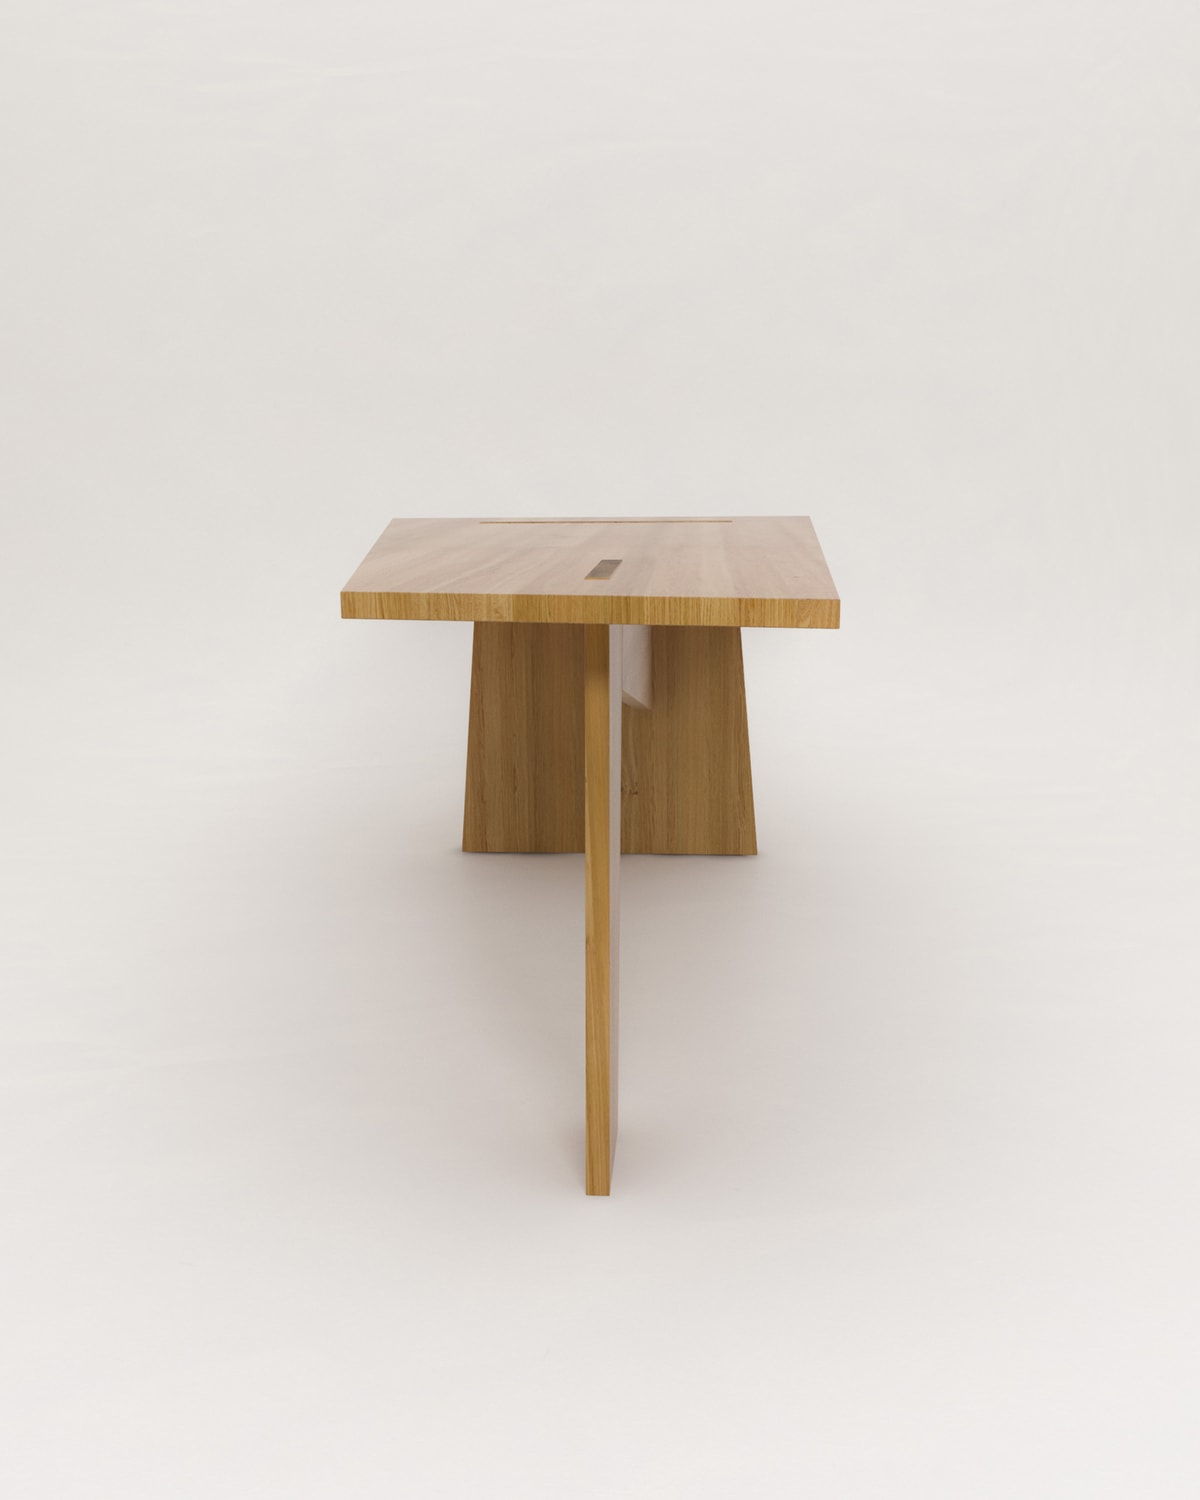 crooked_dining_table_04_1